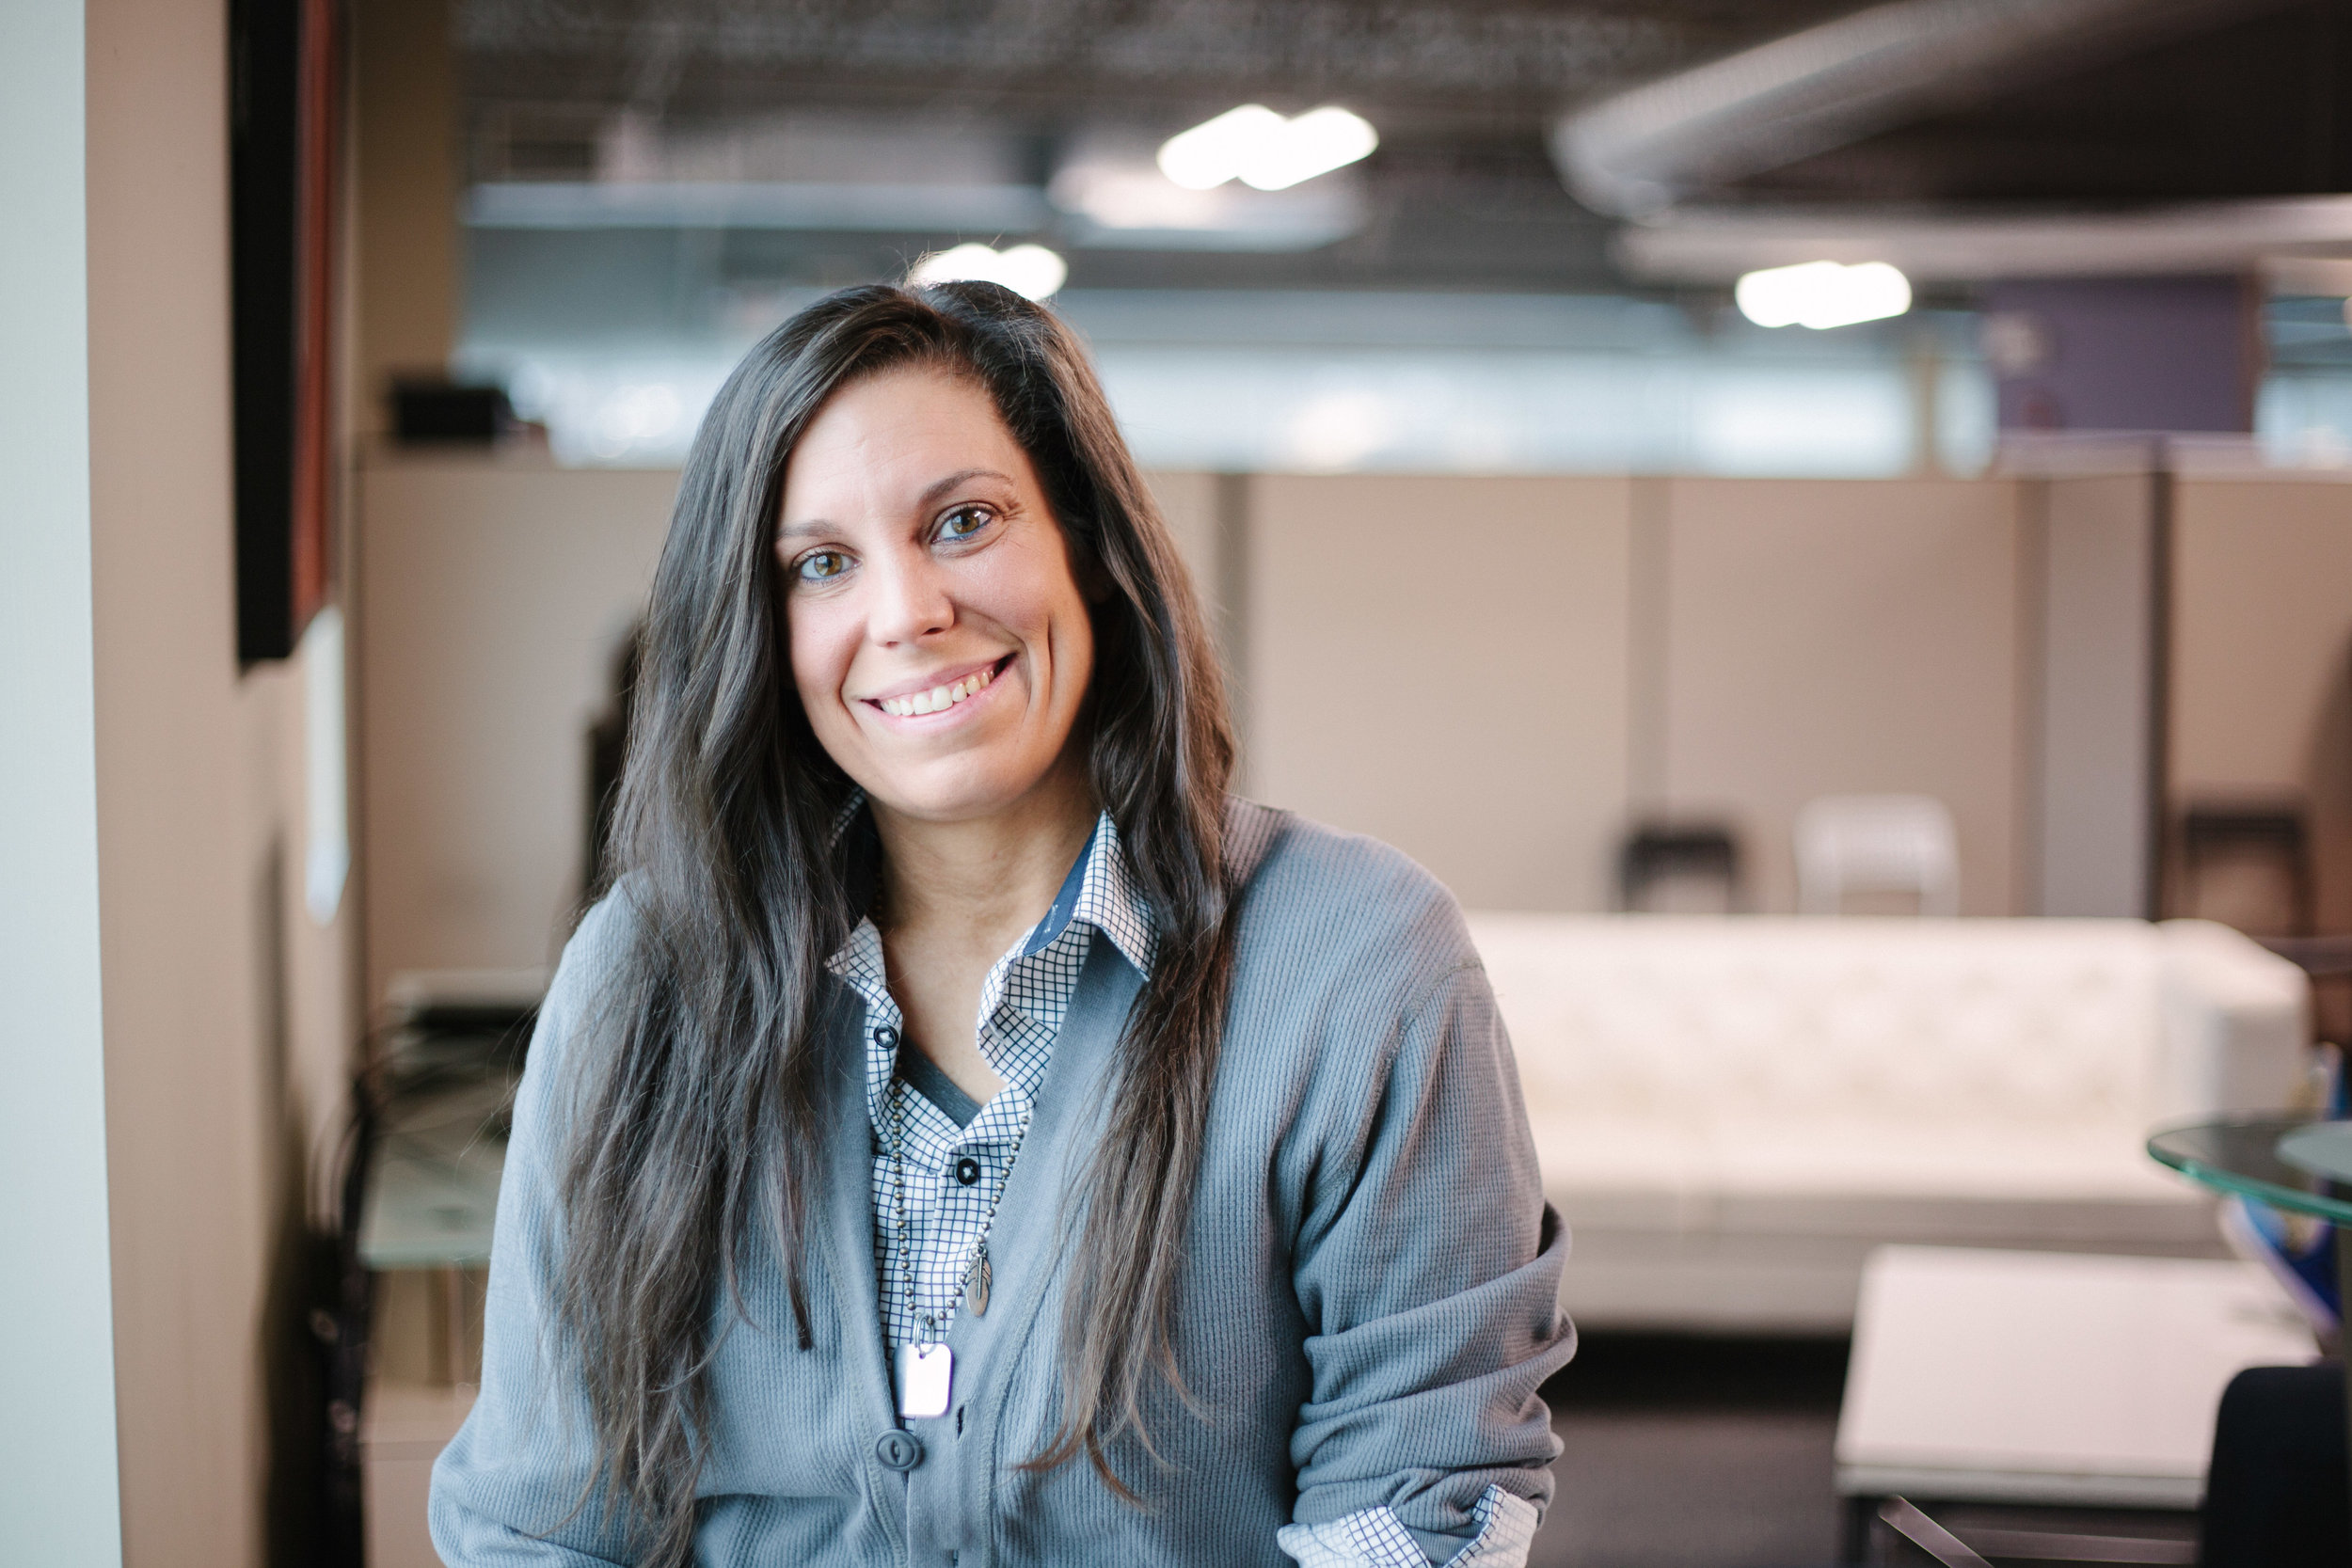 Erika Pumphery | Senior Client Success Manager   After finishing college in 2007 Erika came to Sapper a decade later. When not at Sapper she can be found in the gym, watching ANY sport, buying shoes, reading, or with her two cats. As a former college athlete, Erika sustains competitive urges by participating in co-ed softball/kickball weekly.